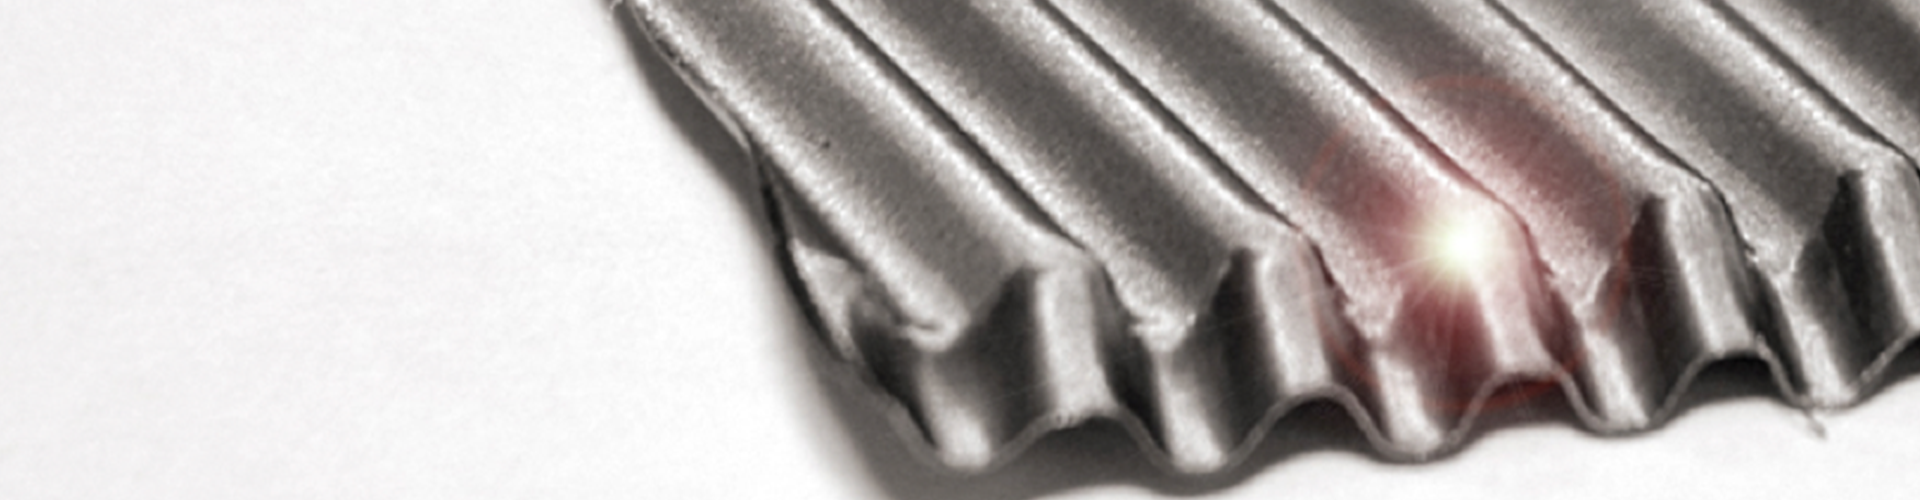 Metal substrates by Excalibre Technologies